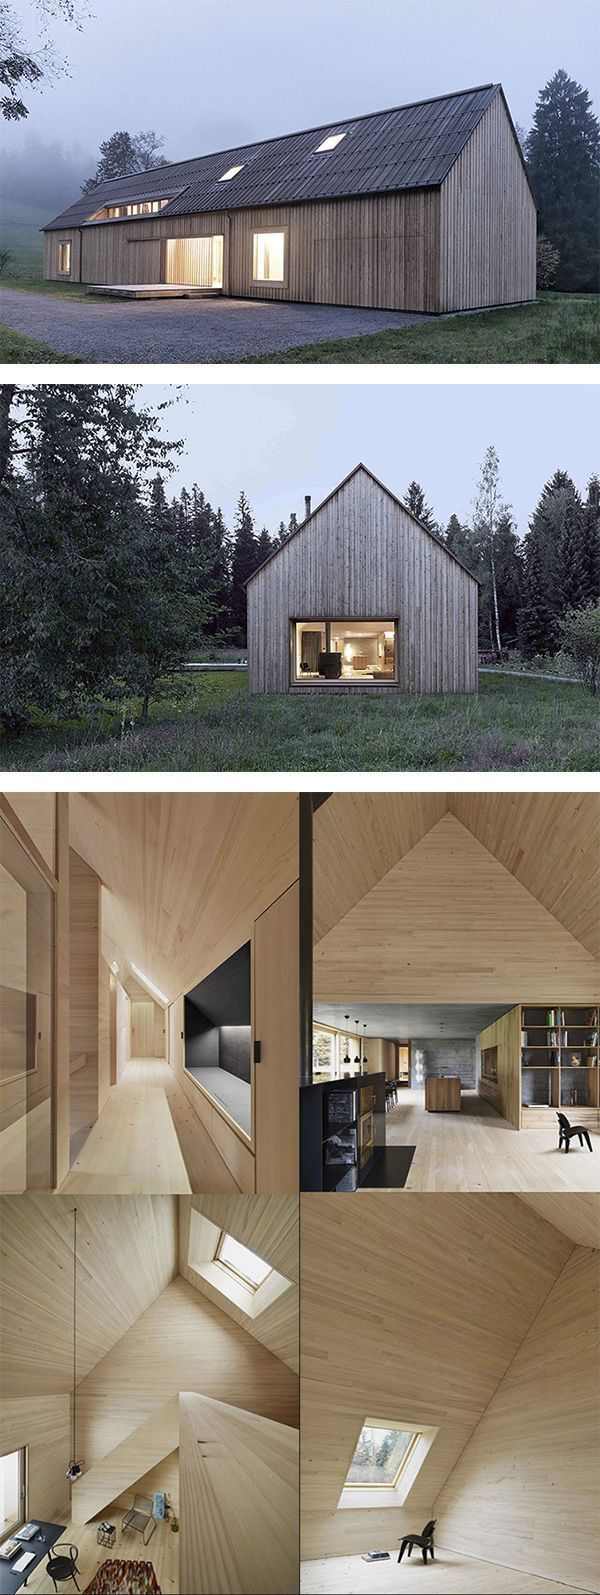 Modernes haus-exterieur-design  best cabin fever images on pinterest  home ideas house